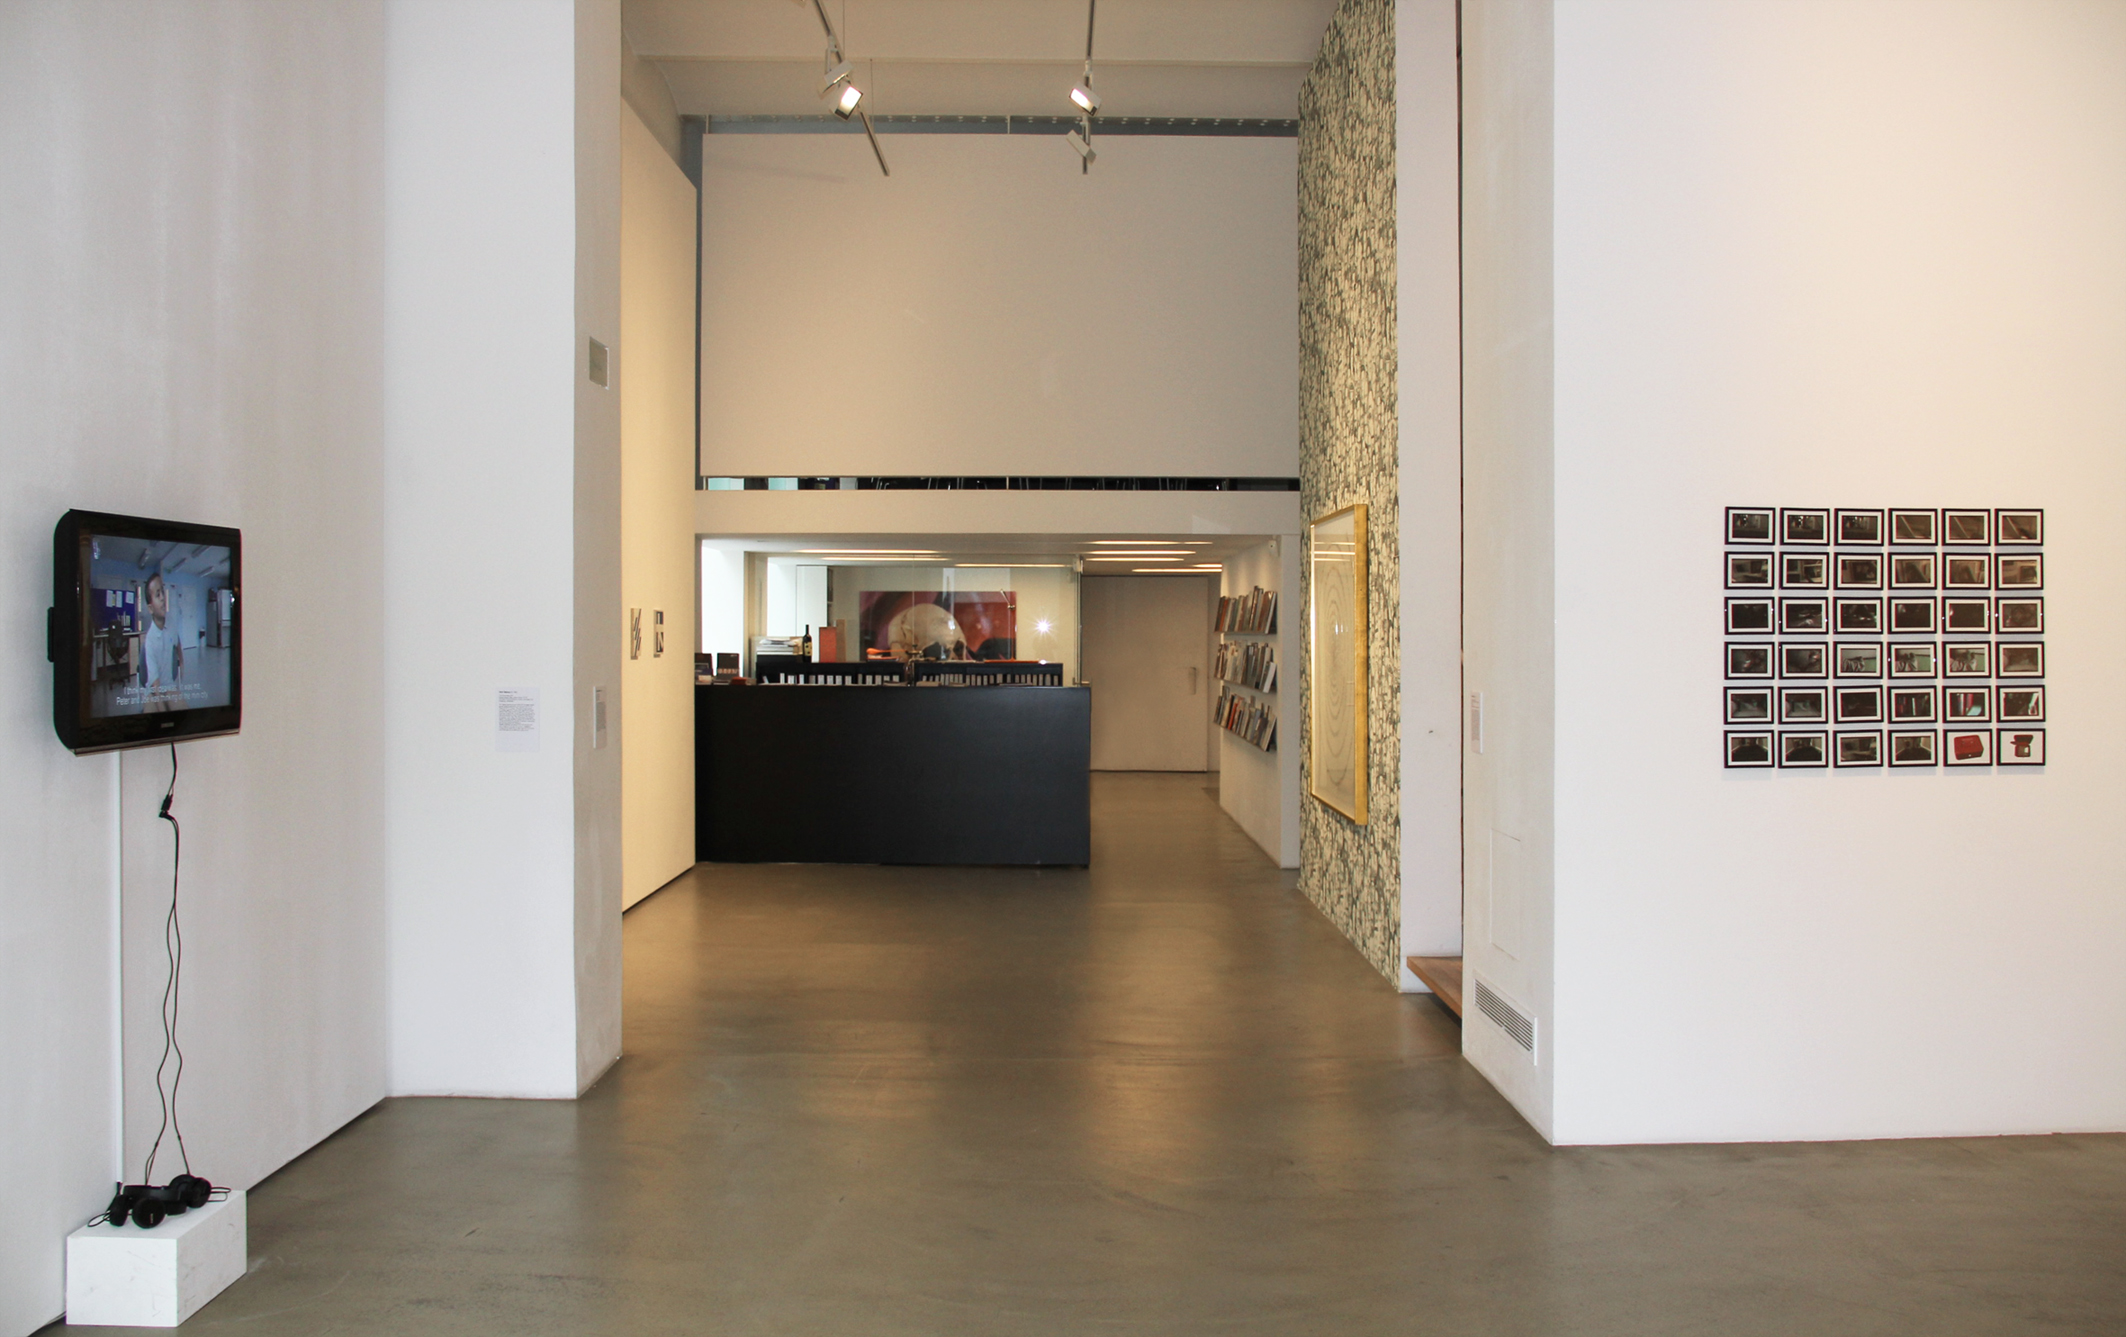 Exhibition View, Mario Mauroner Contemporary Art, curated by_Katharina Gregos, 2015, Courtesy: Mario Mauroner Contemporary Art